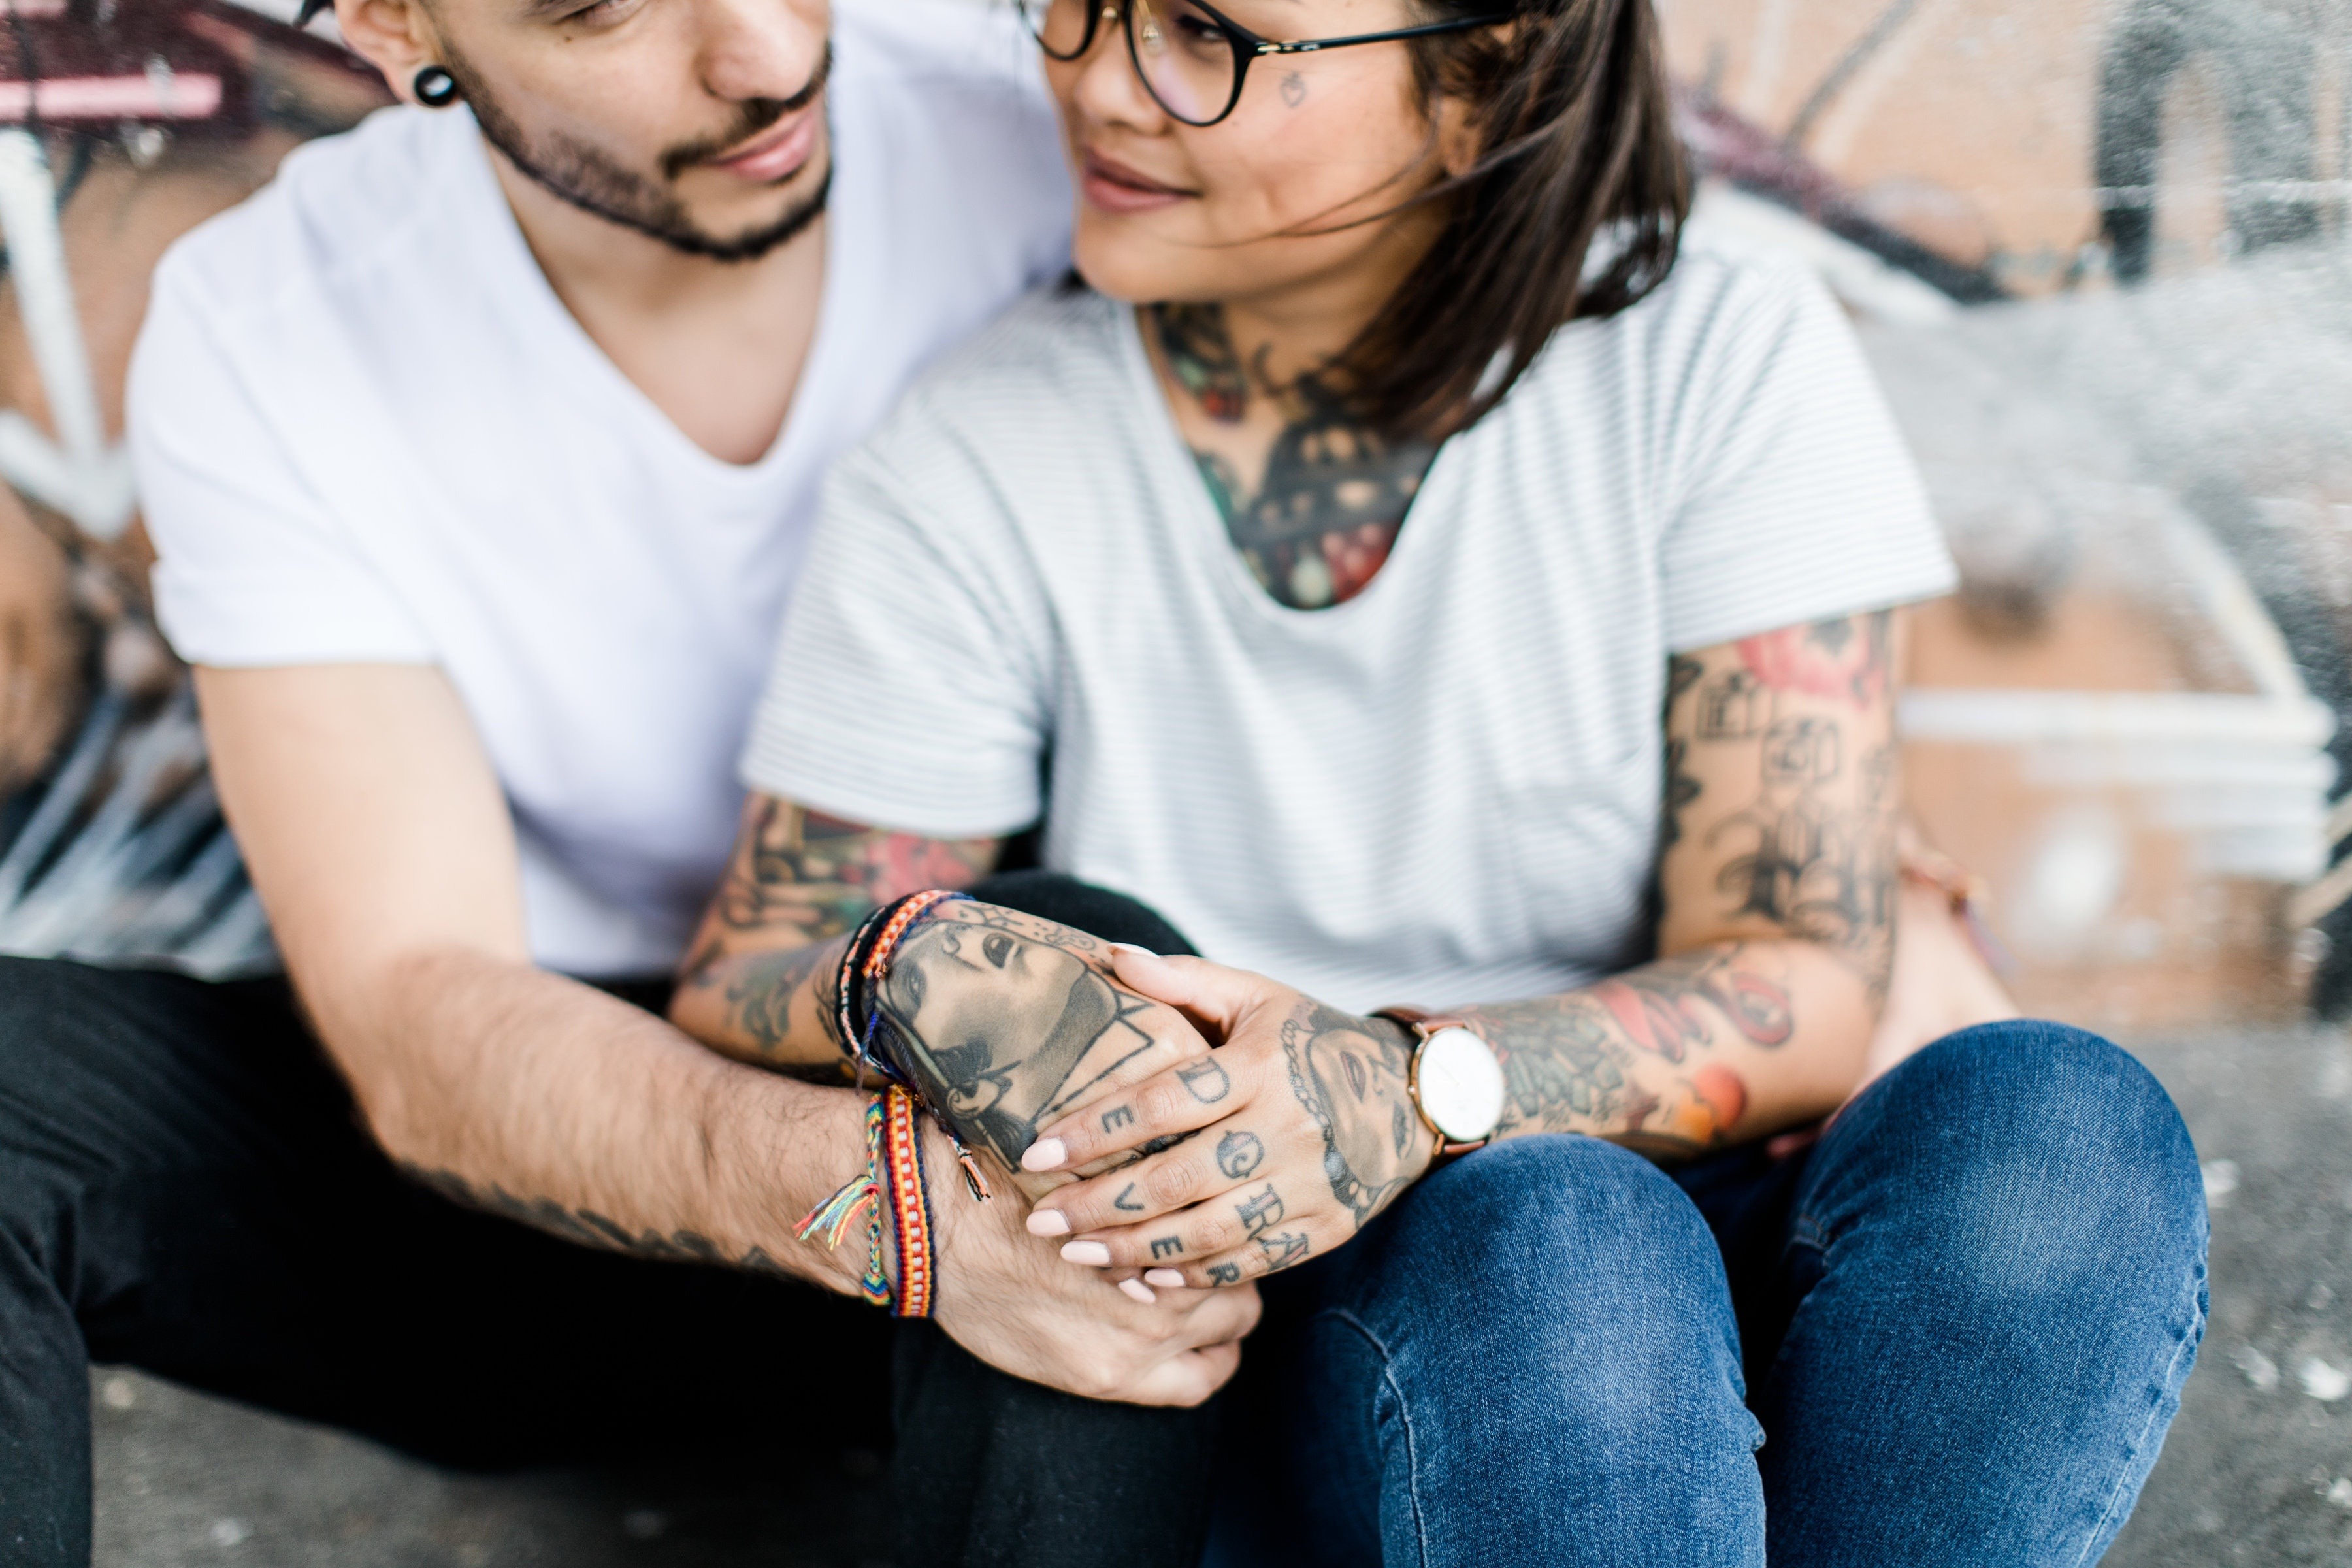 How often should you talk to someone you are hookup